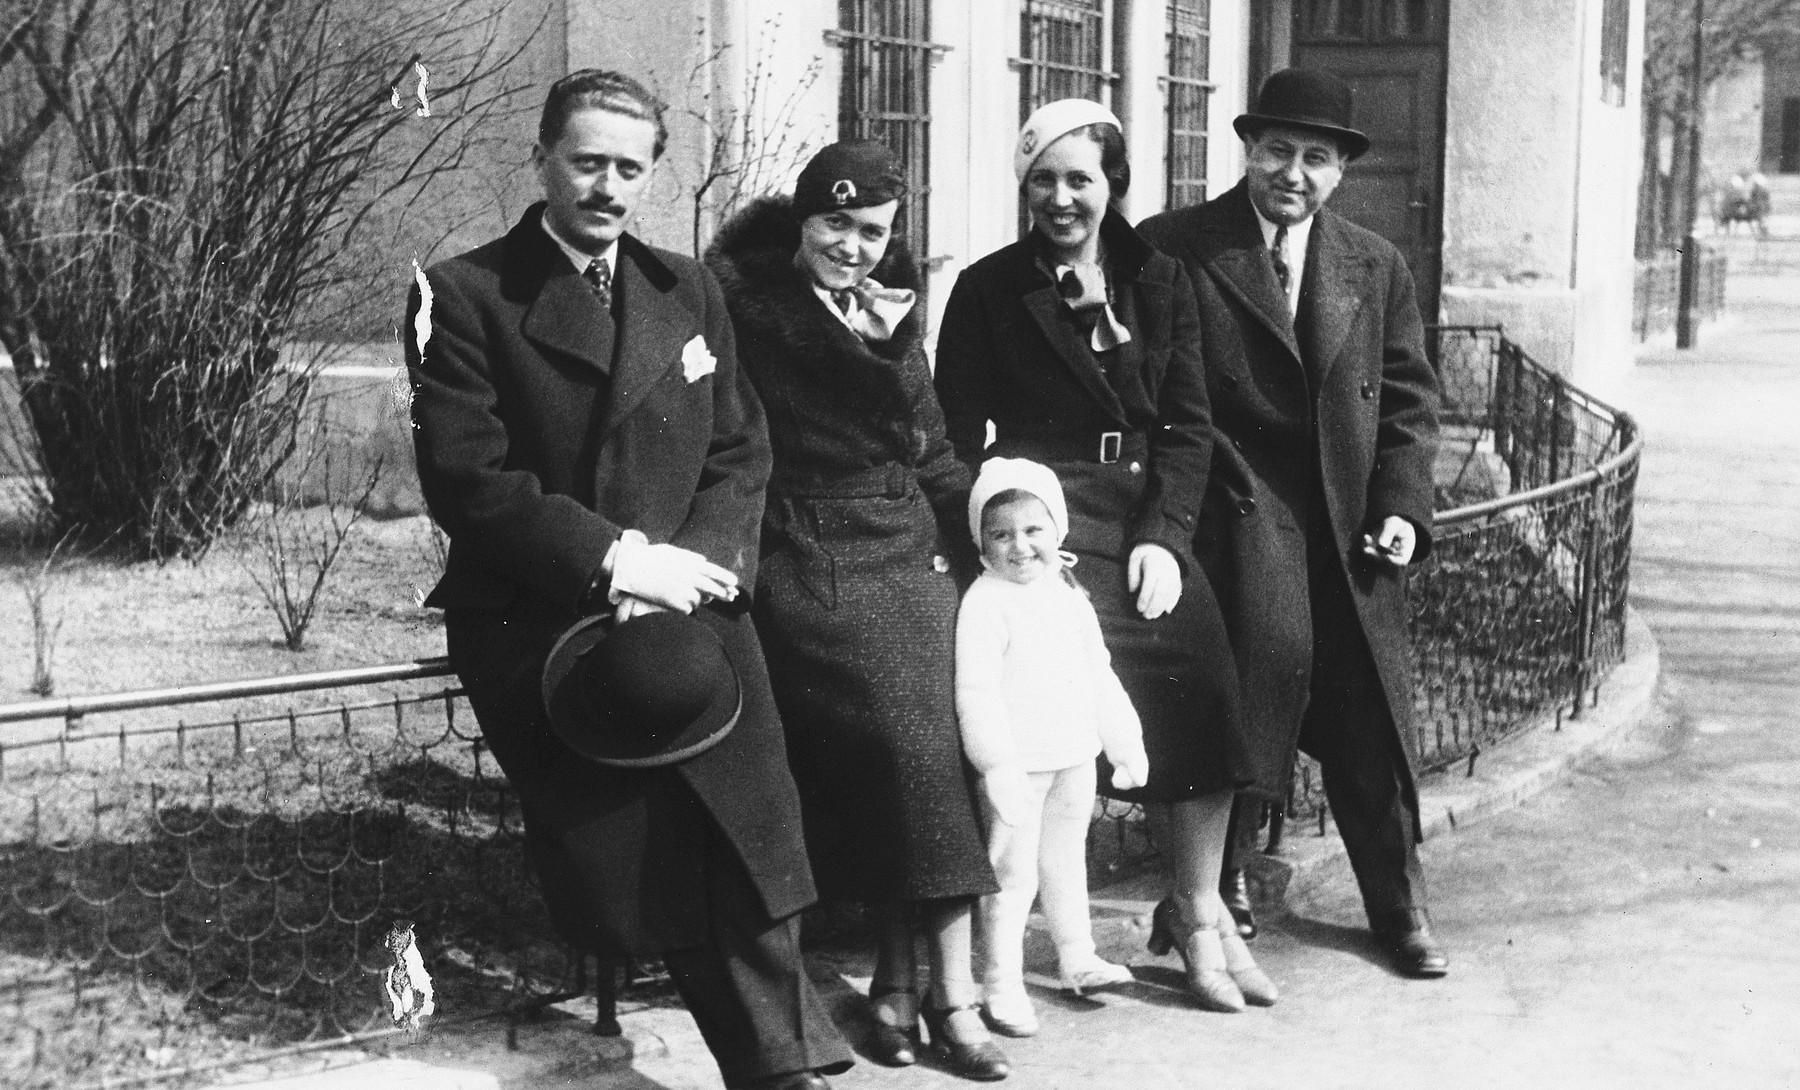 Portrait of the Weichherz family taken outside a building [probably in Bratislava].  From left to right: are Karol Ripper (a family friend in Bratislava who later died in the Holocaust), Esti Weichherz, Kitty Weichherz, Rudica Zoltan, (the wife of Bela`s brother Marcel who survived Ravensbrueck), and Bela Weichherz.  This photo was taken from the diary of Kitty's life written by her father, Bela Weichherz.